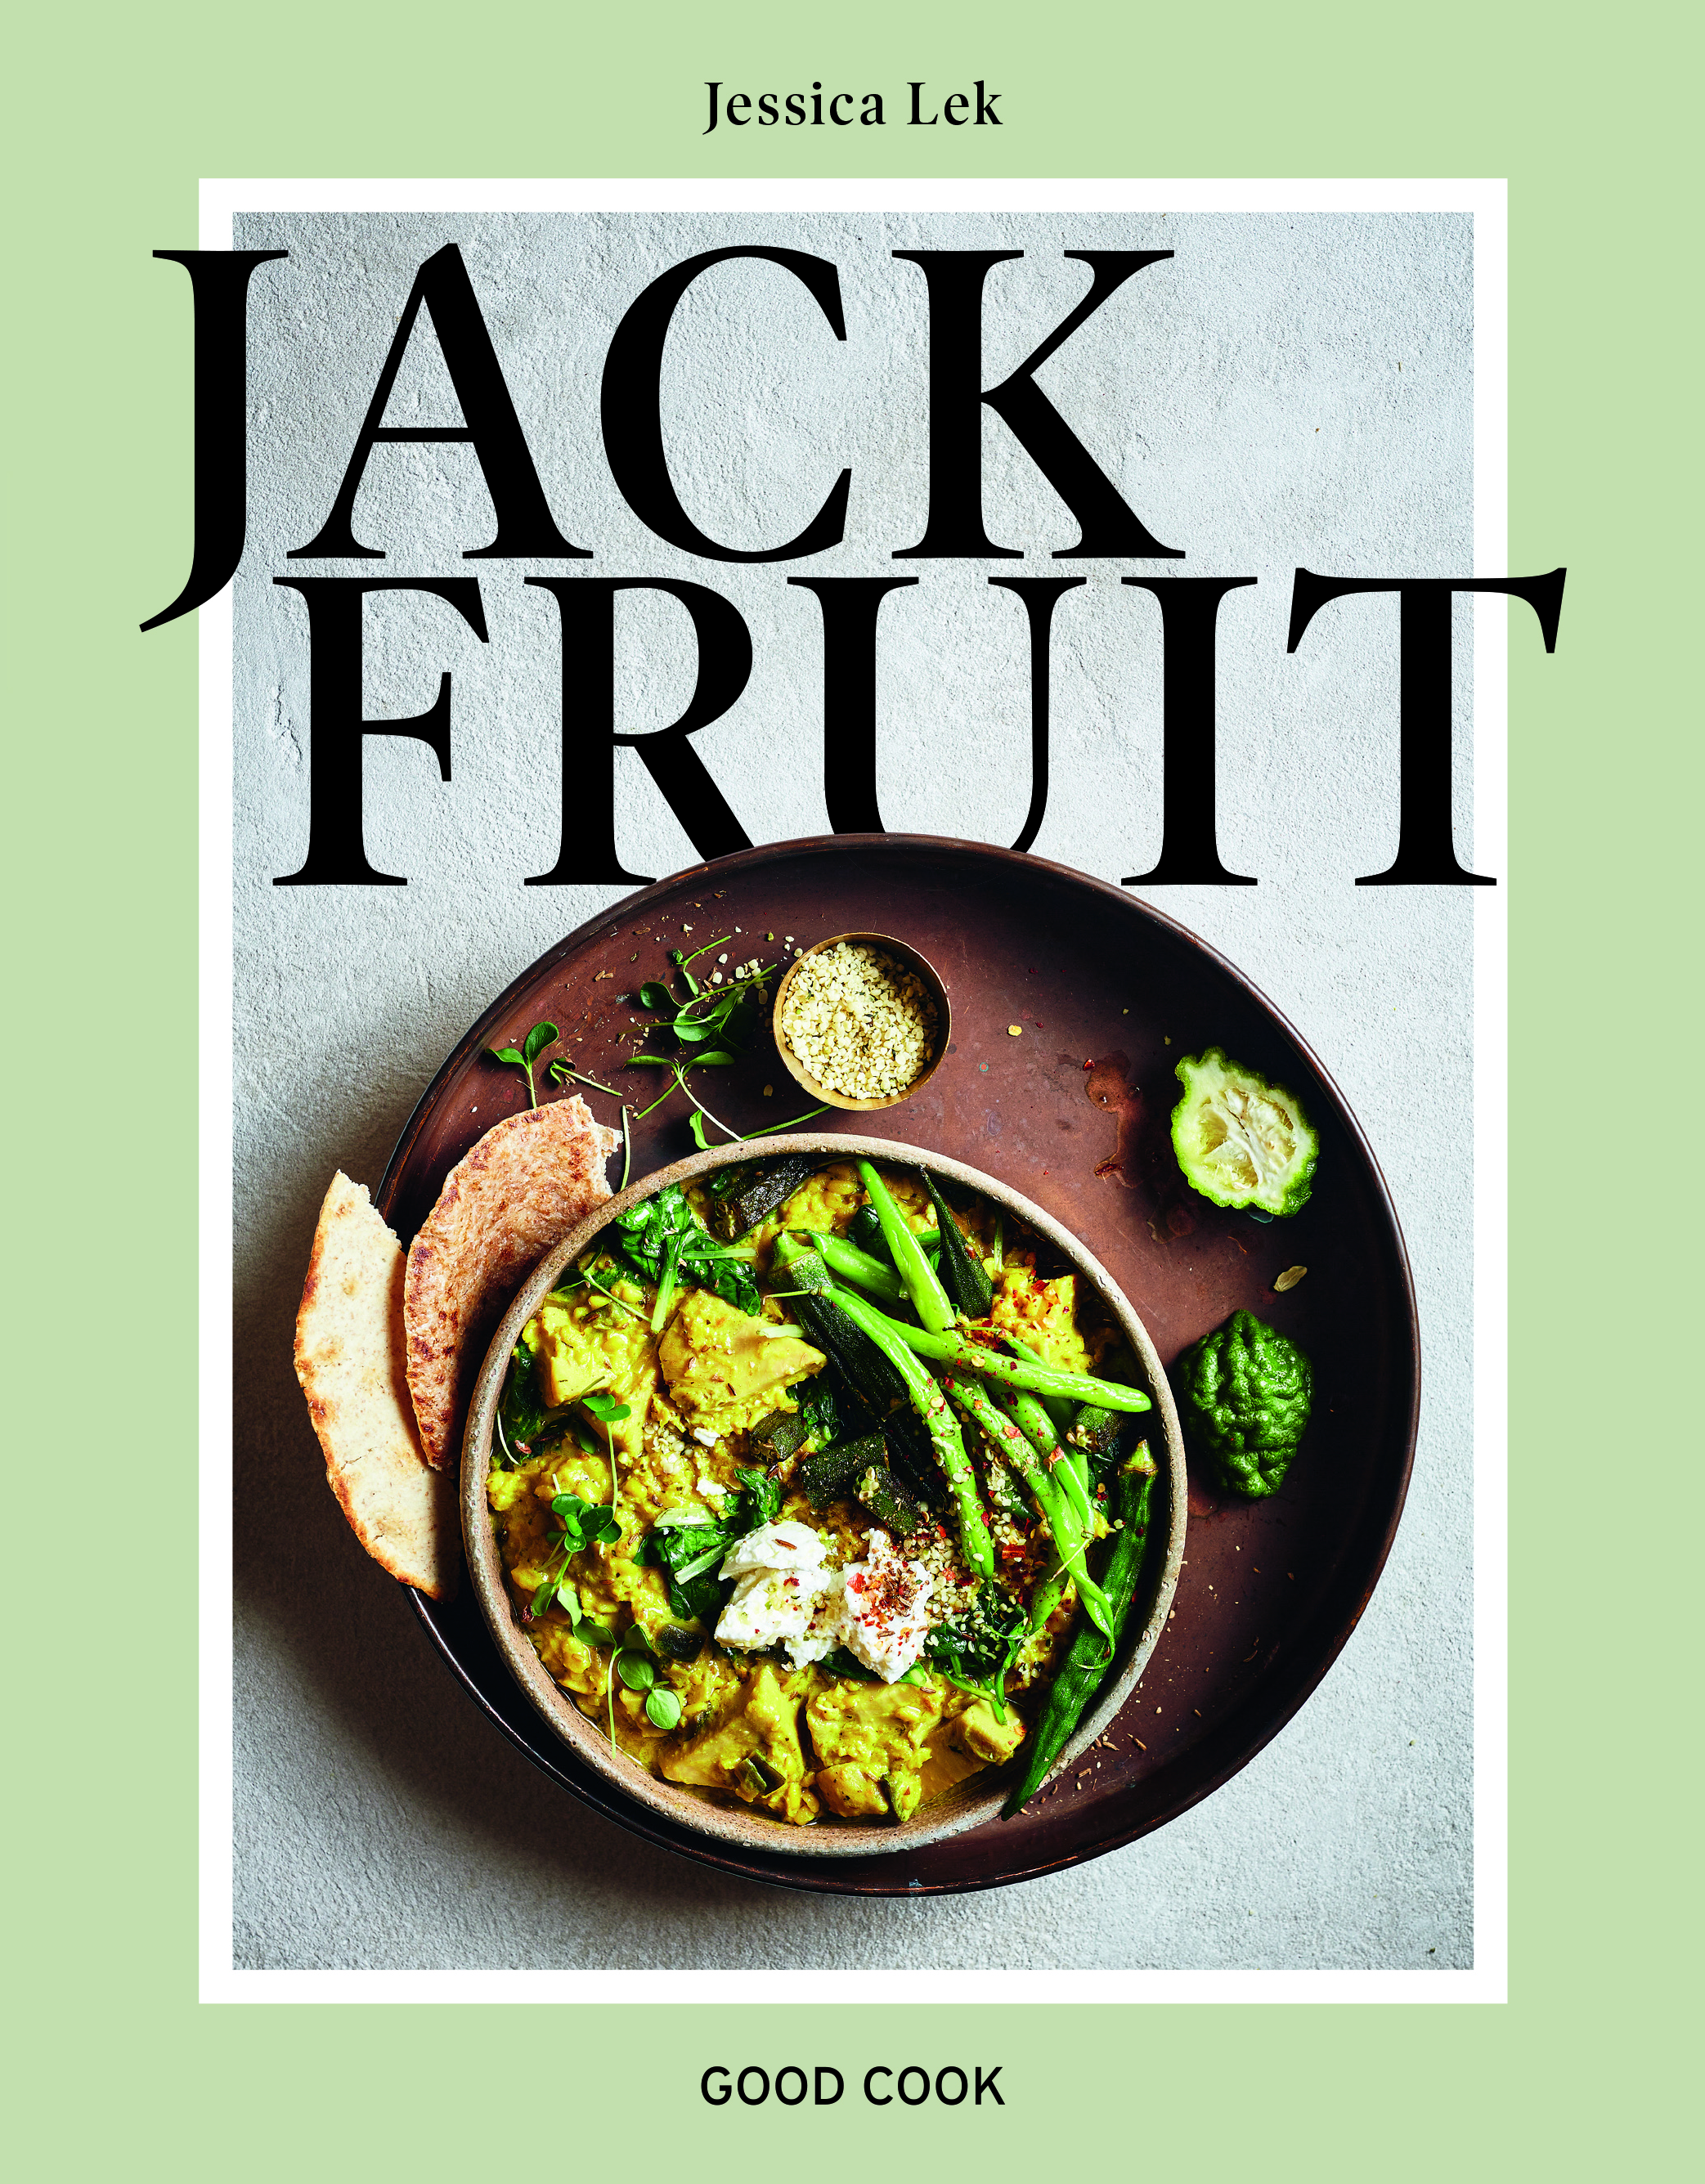 Jackfruit kookboek cover